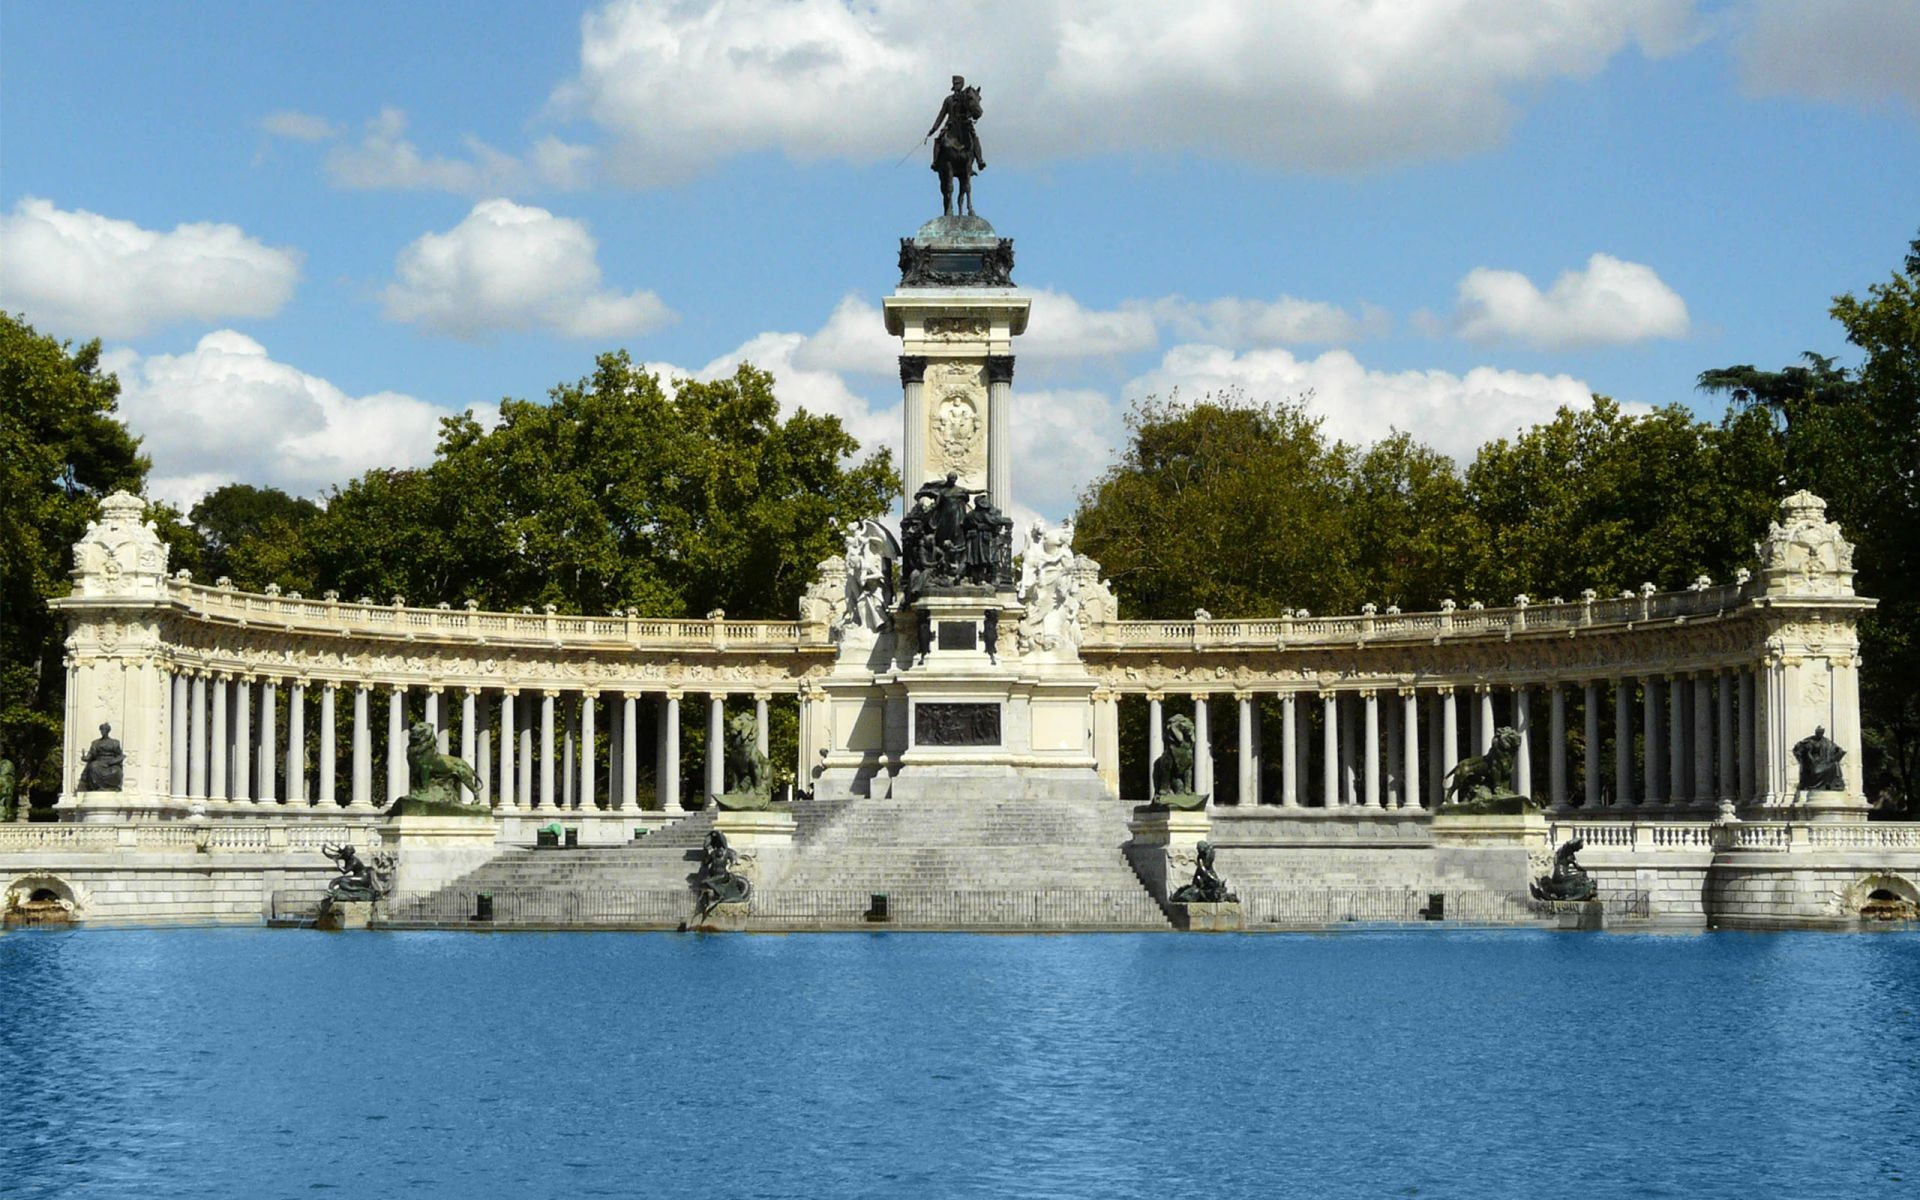 Parque del buen retiro retiro park what to see in madrid for Parque del retiro madrid